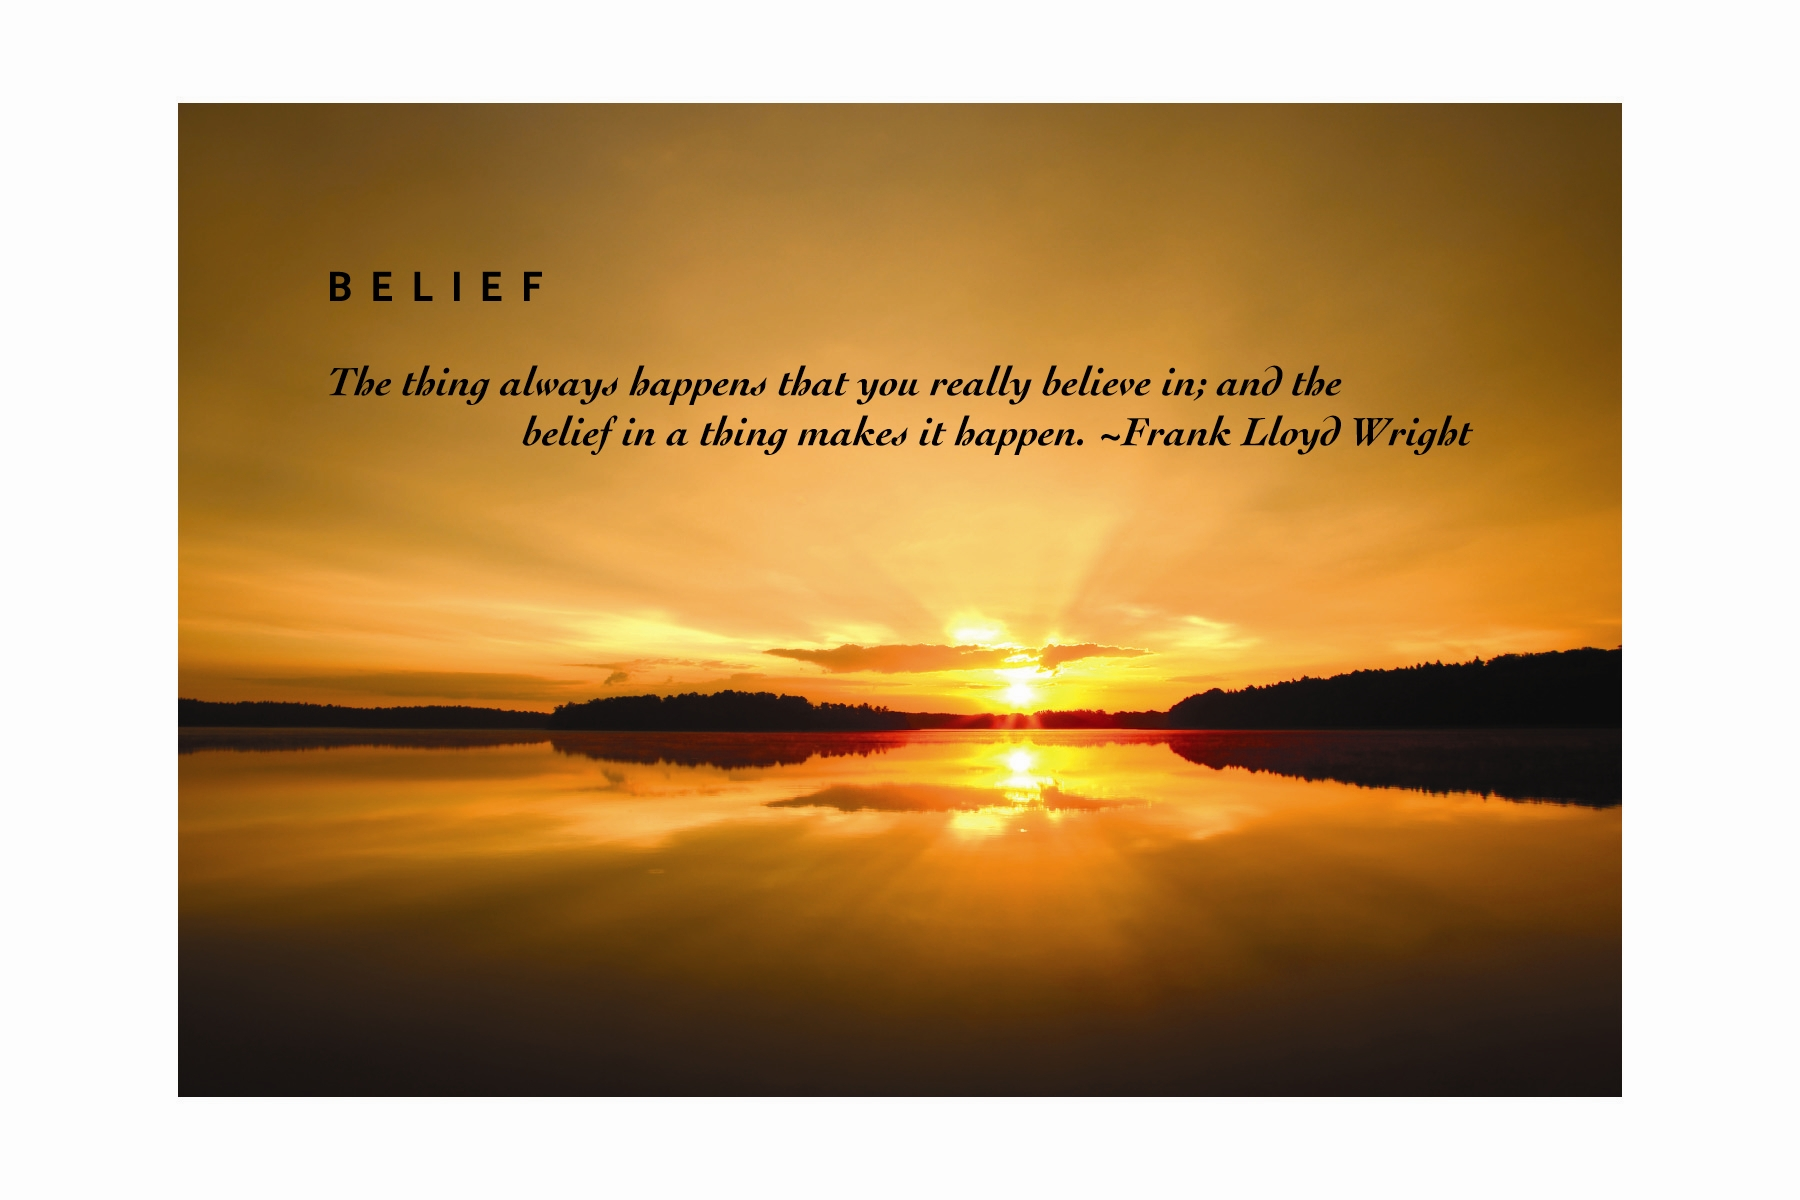 Belief In Struggle by OJ Fulbright   Ant's Thoughts